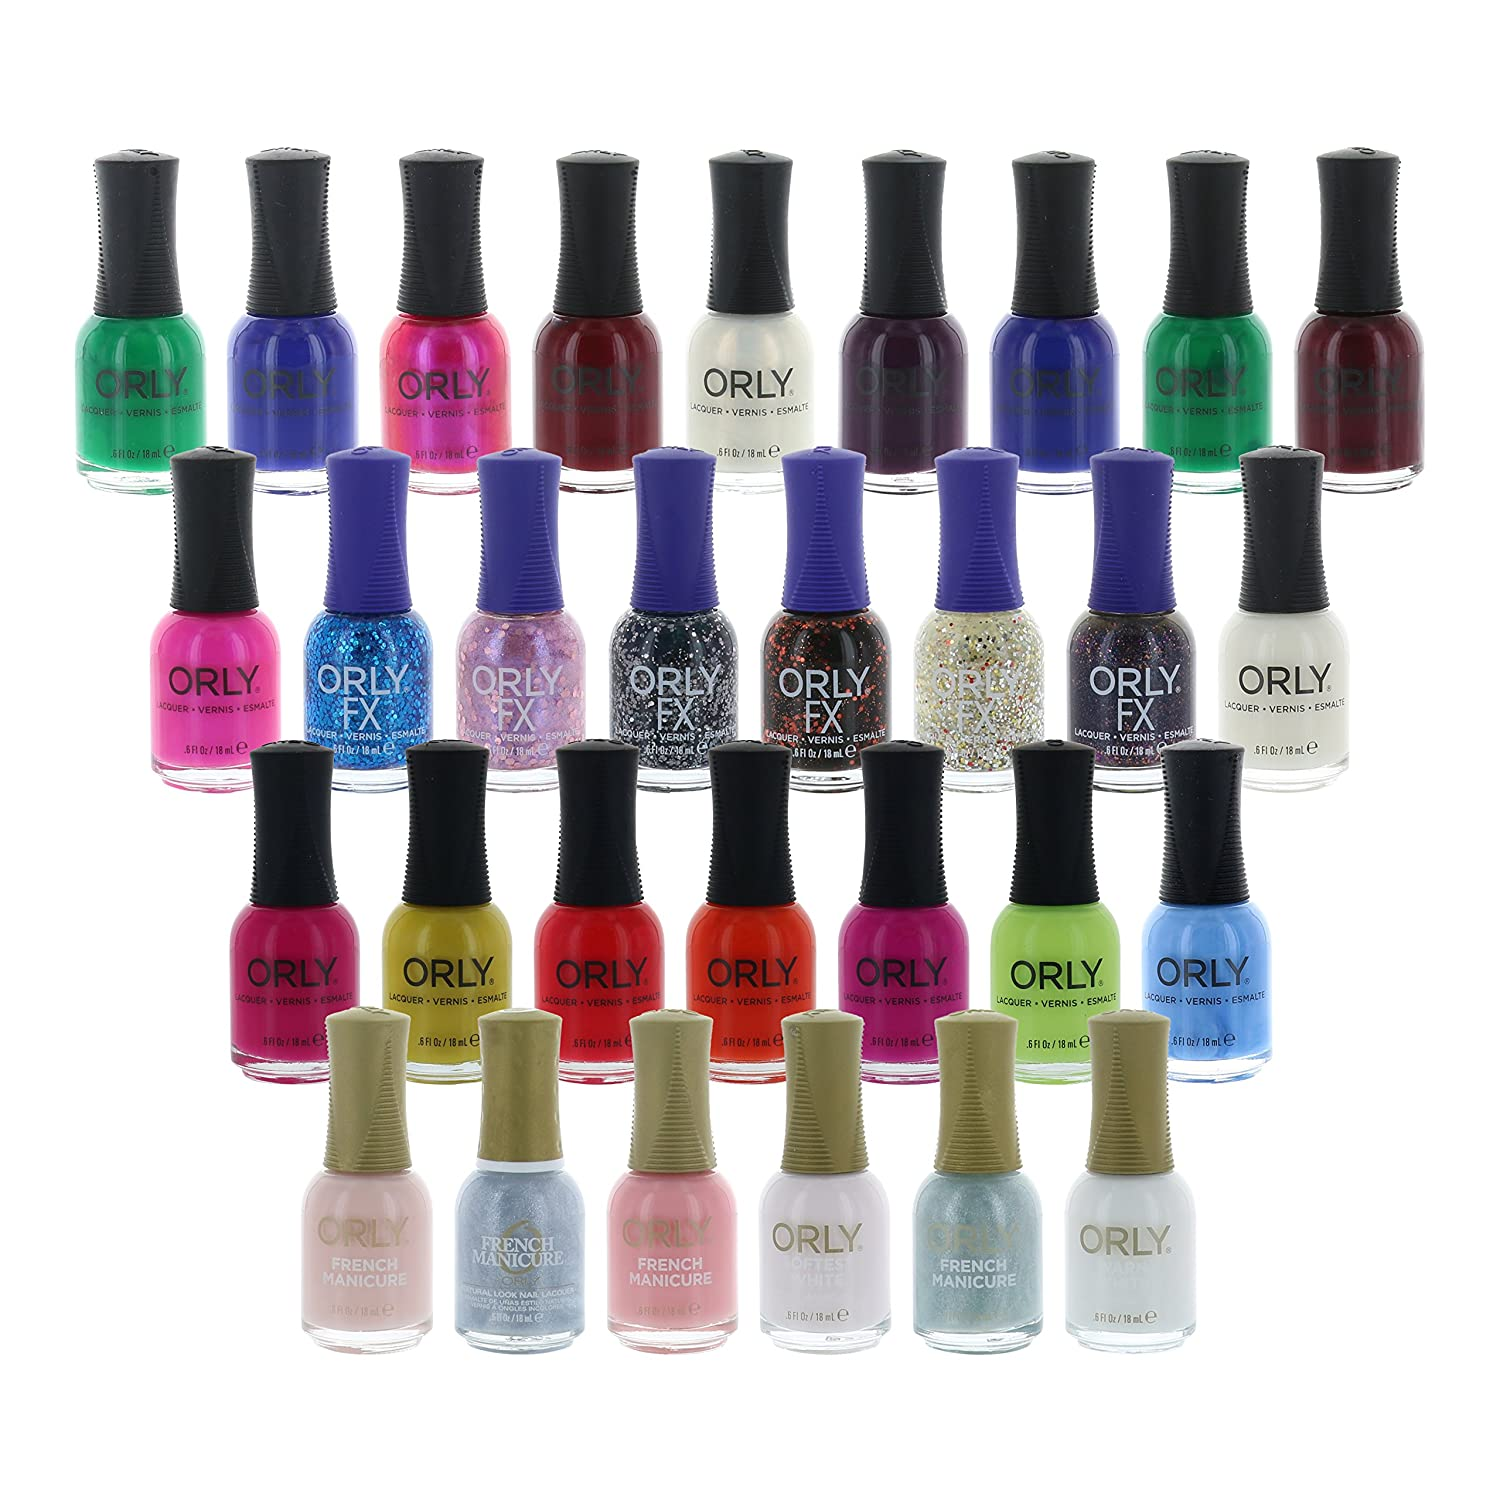 Best At Home Gel Nail Kit 2020.Top 5 Best Nail Polish Brands Reviews 2019 2020 On Flipboard